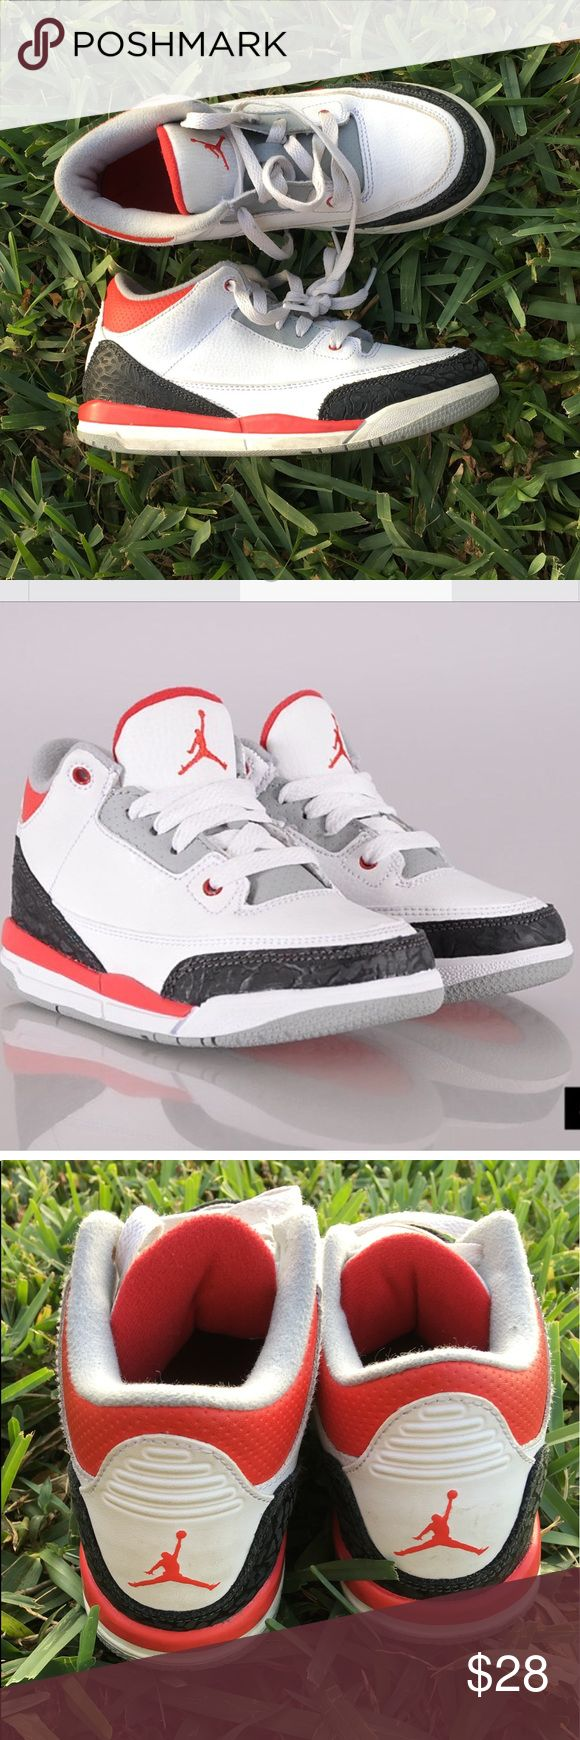 Nike Air Jordan Retro 3 Black White Fire Red Gray Air Jordan retroes will never go out of style. So many colorways have impacted the shoe game and of course are legendary because they were worn by MJ himself during many of his court achievements. The Air Jordan 3 Fire Red is a model adored by the masses. First released in 1988, the sneaker was one of the three OG colorways worn by MJ. Little boys size 3Y. Worn but in really good shape. Original price $175! Jordan Shoes Sneakers